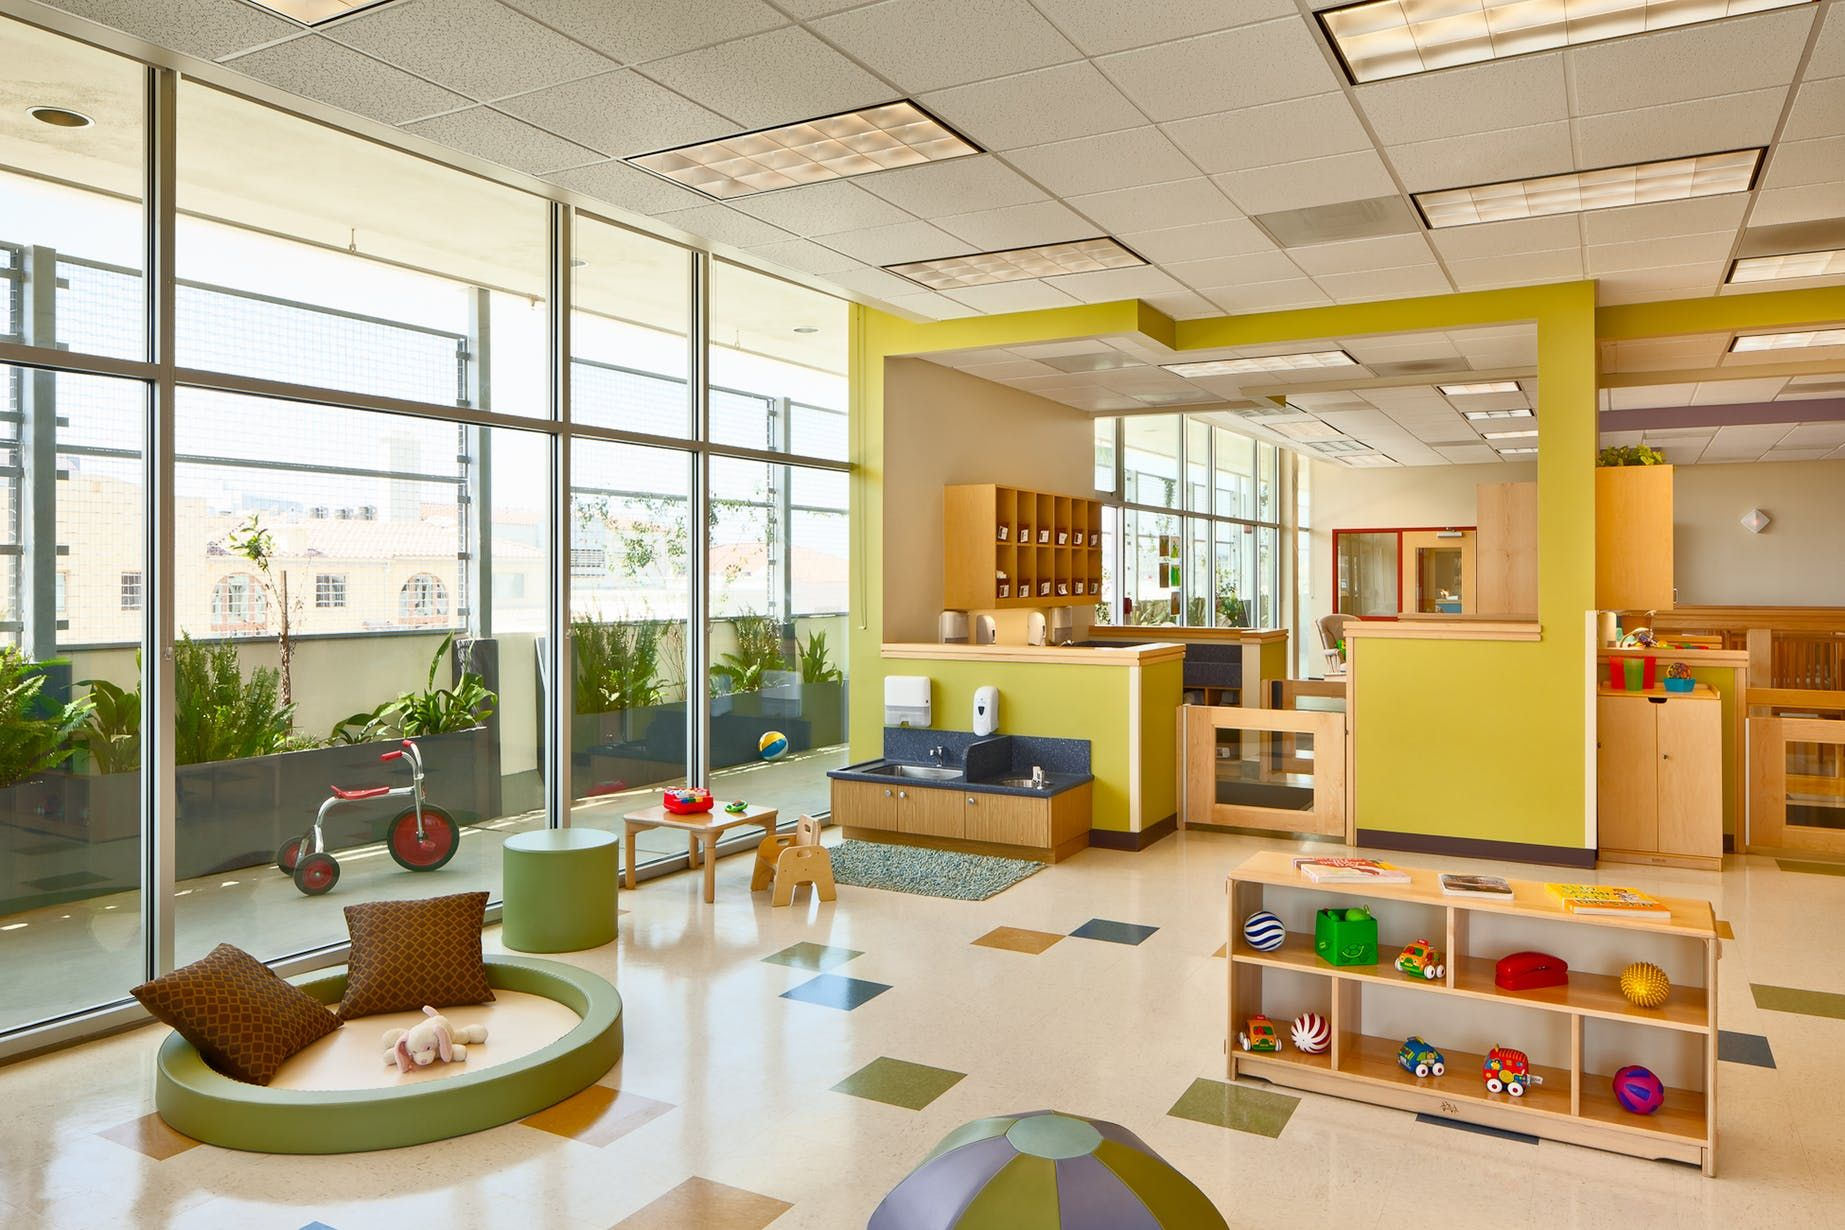 Ucla childcare center in 2019 childhood education - How long is interior design school ...